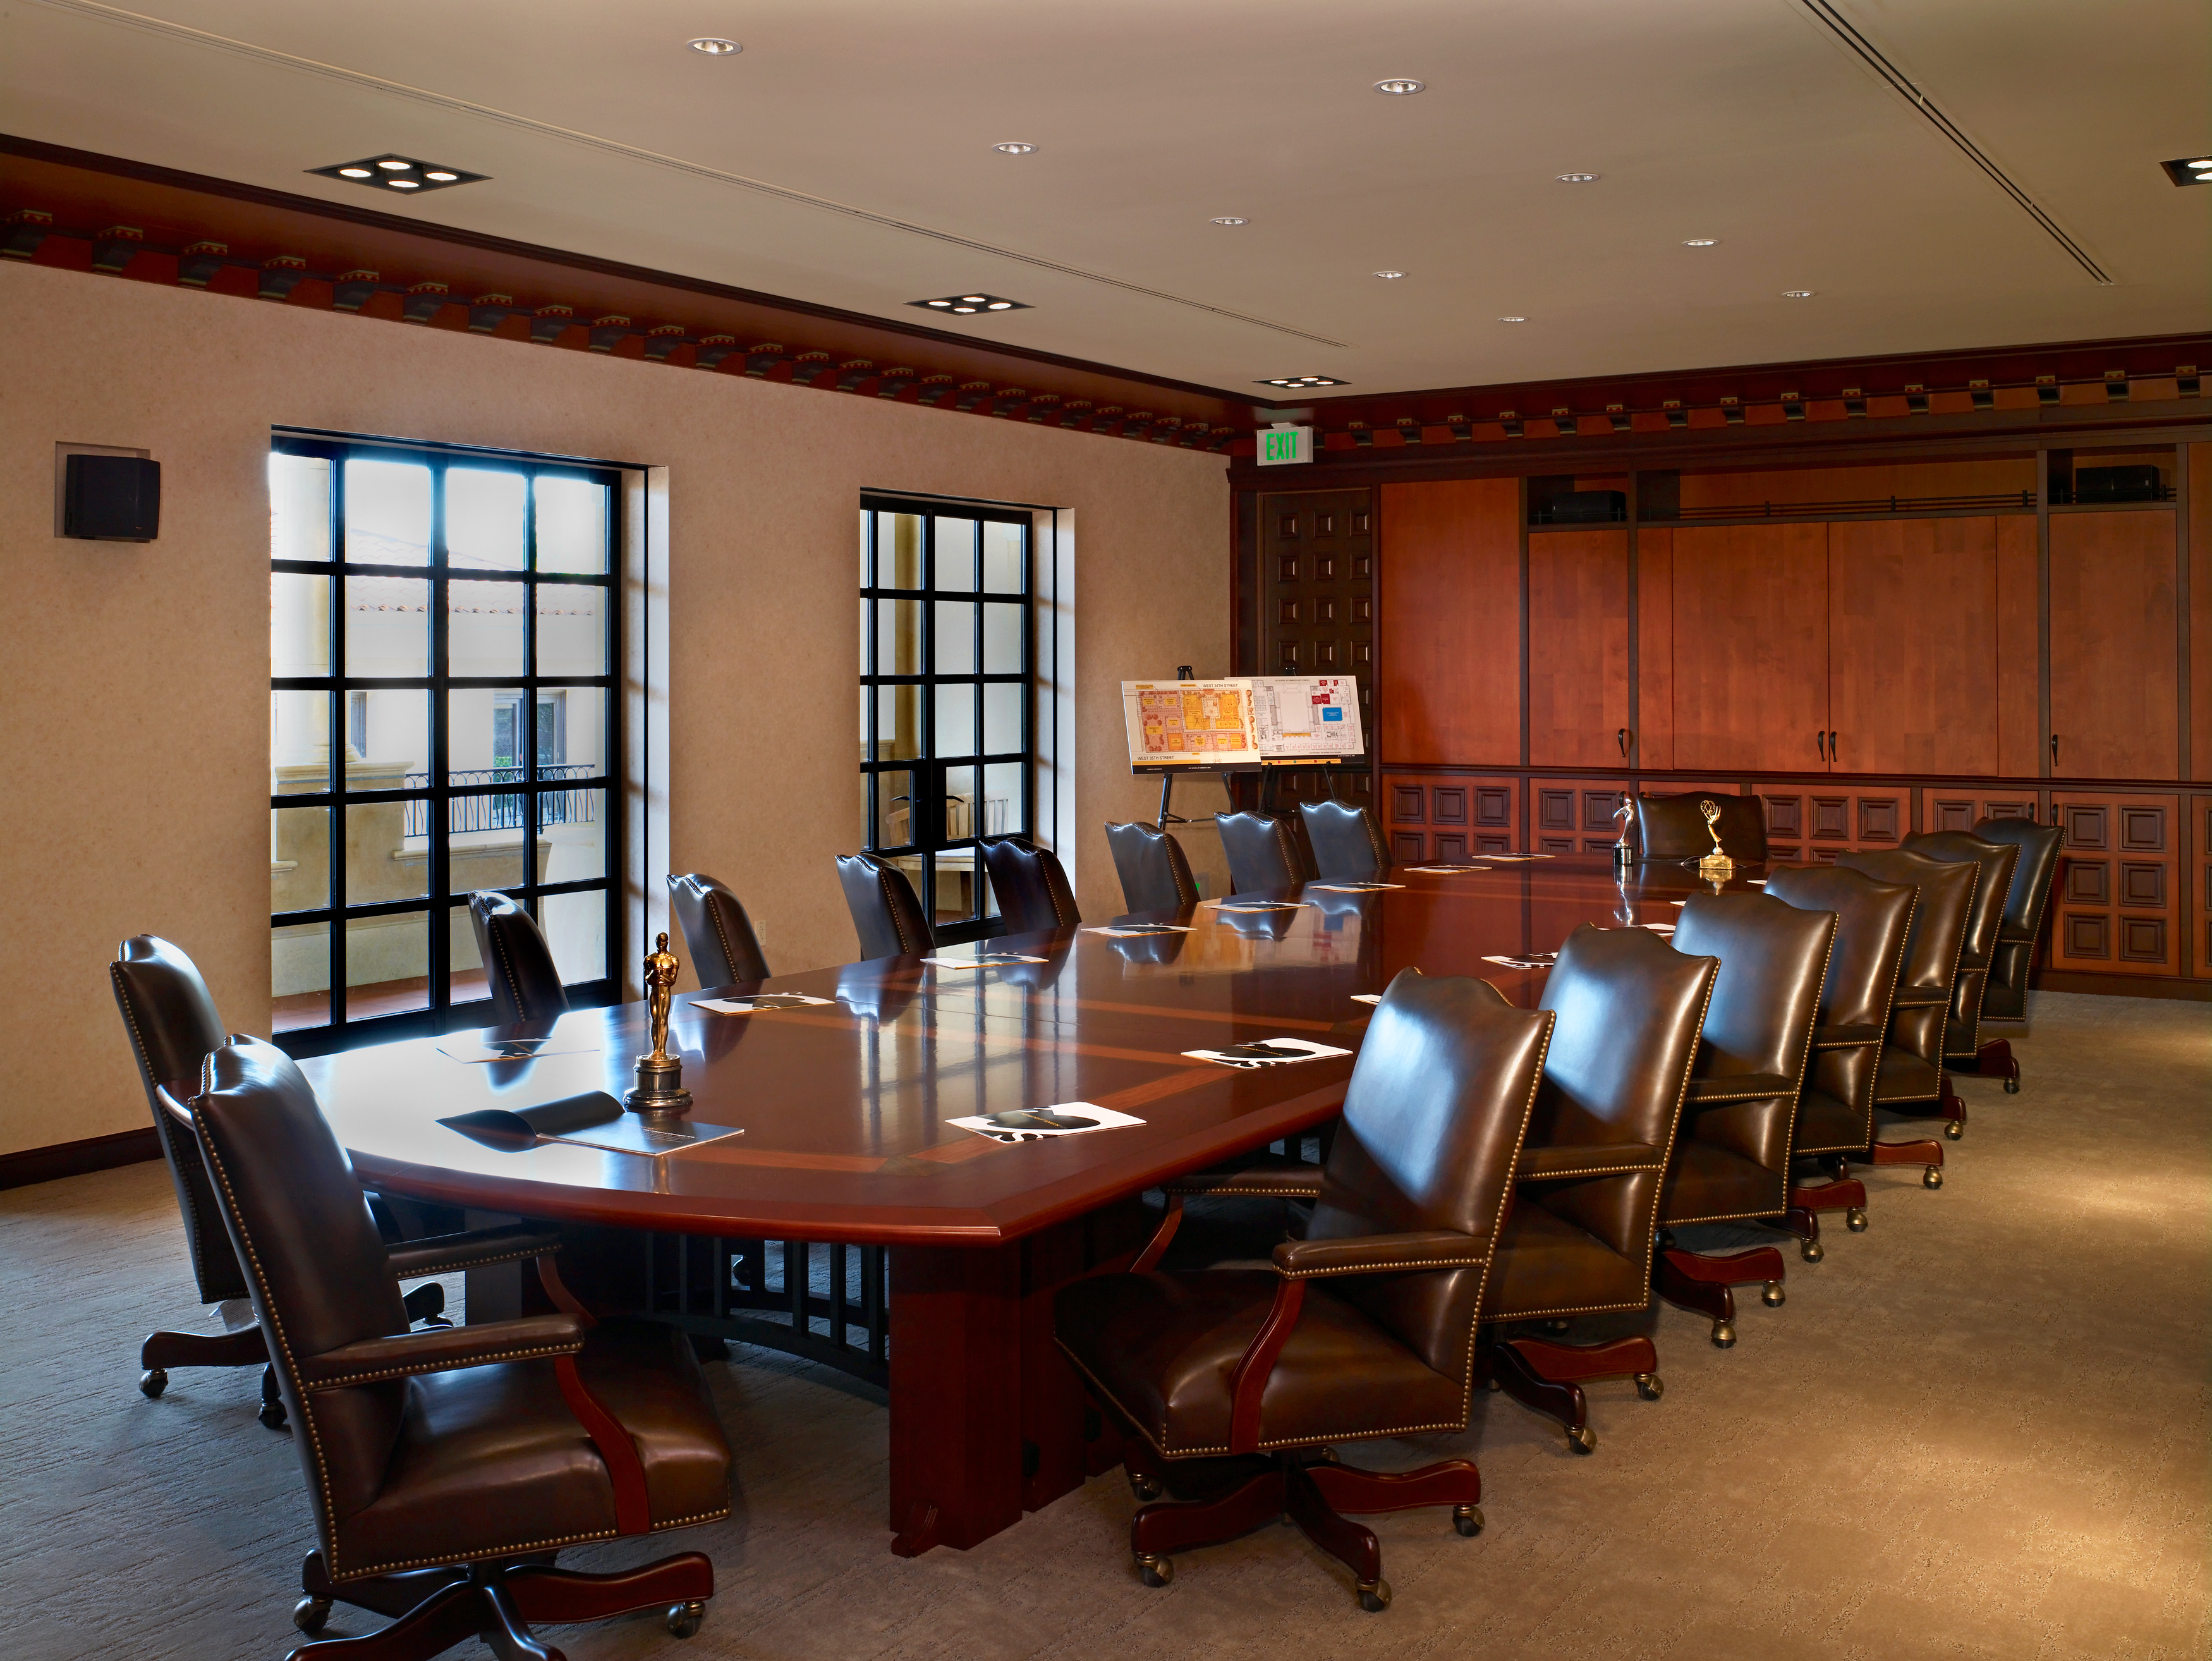 Conference Room With Hopes Windows At USC School Of Cinematic Arts